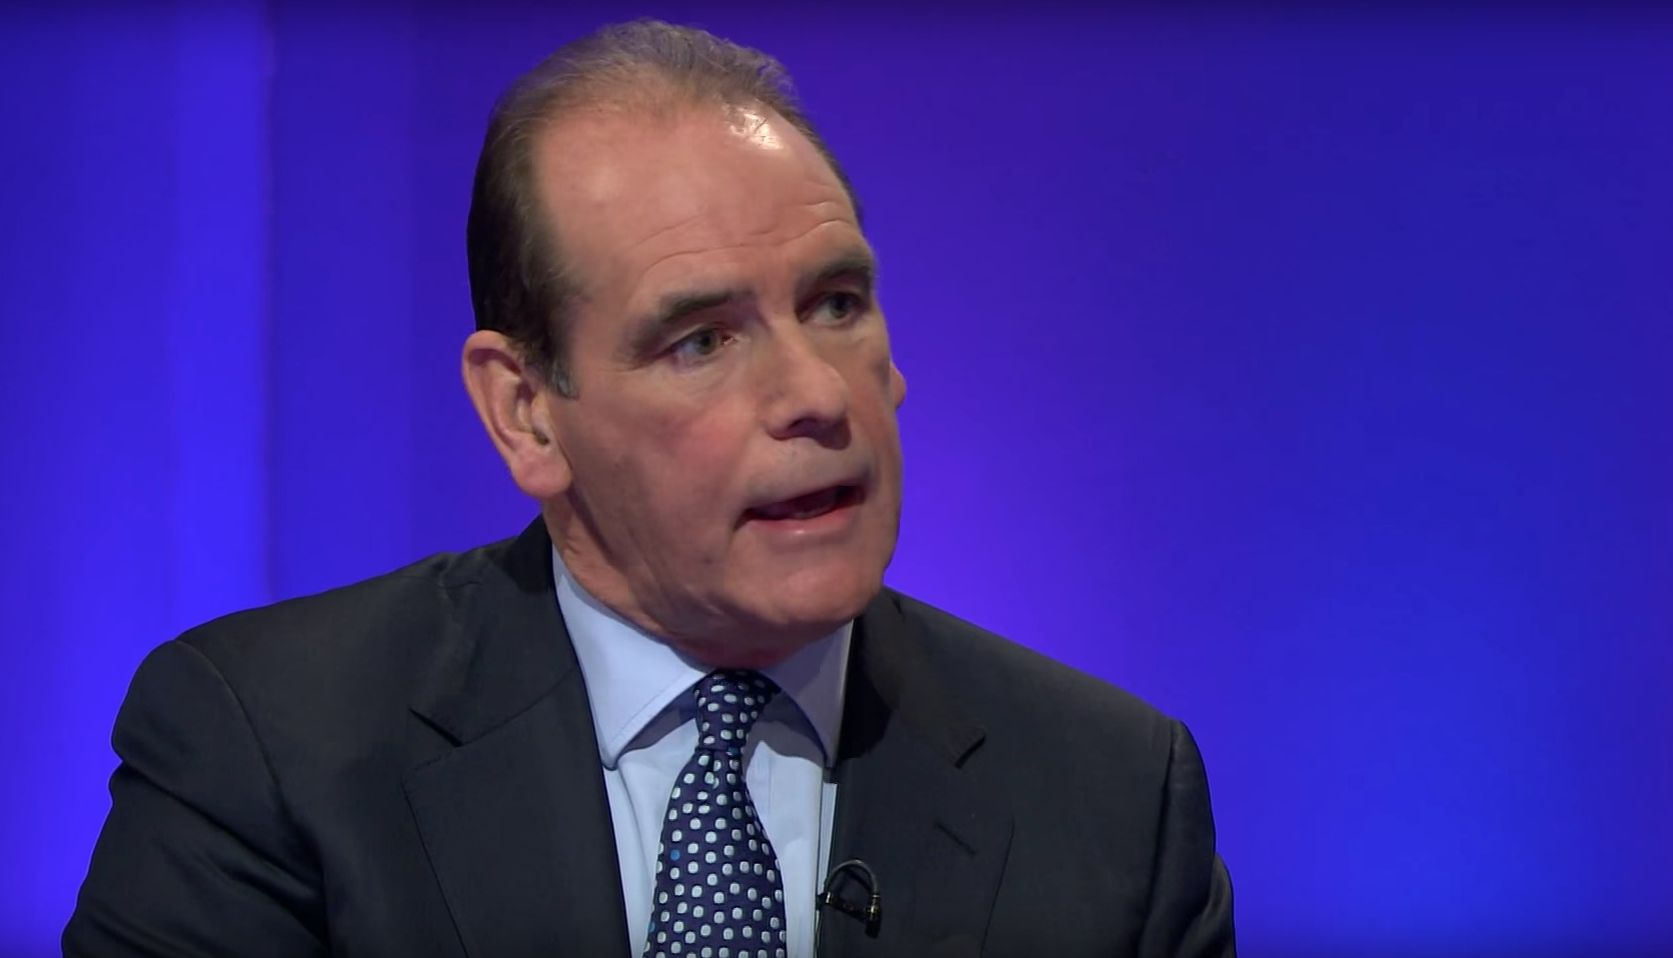 Ex-Police Chief Norman Bettison Accused Of Repeating 'Smears' In New Hillsborough